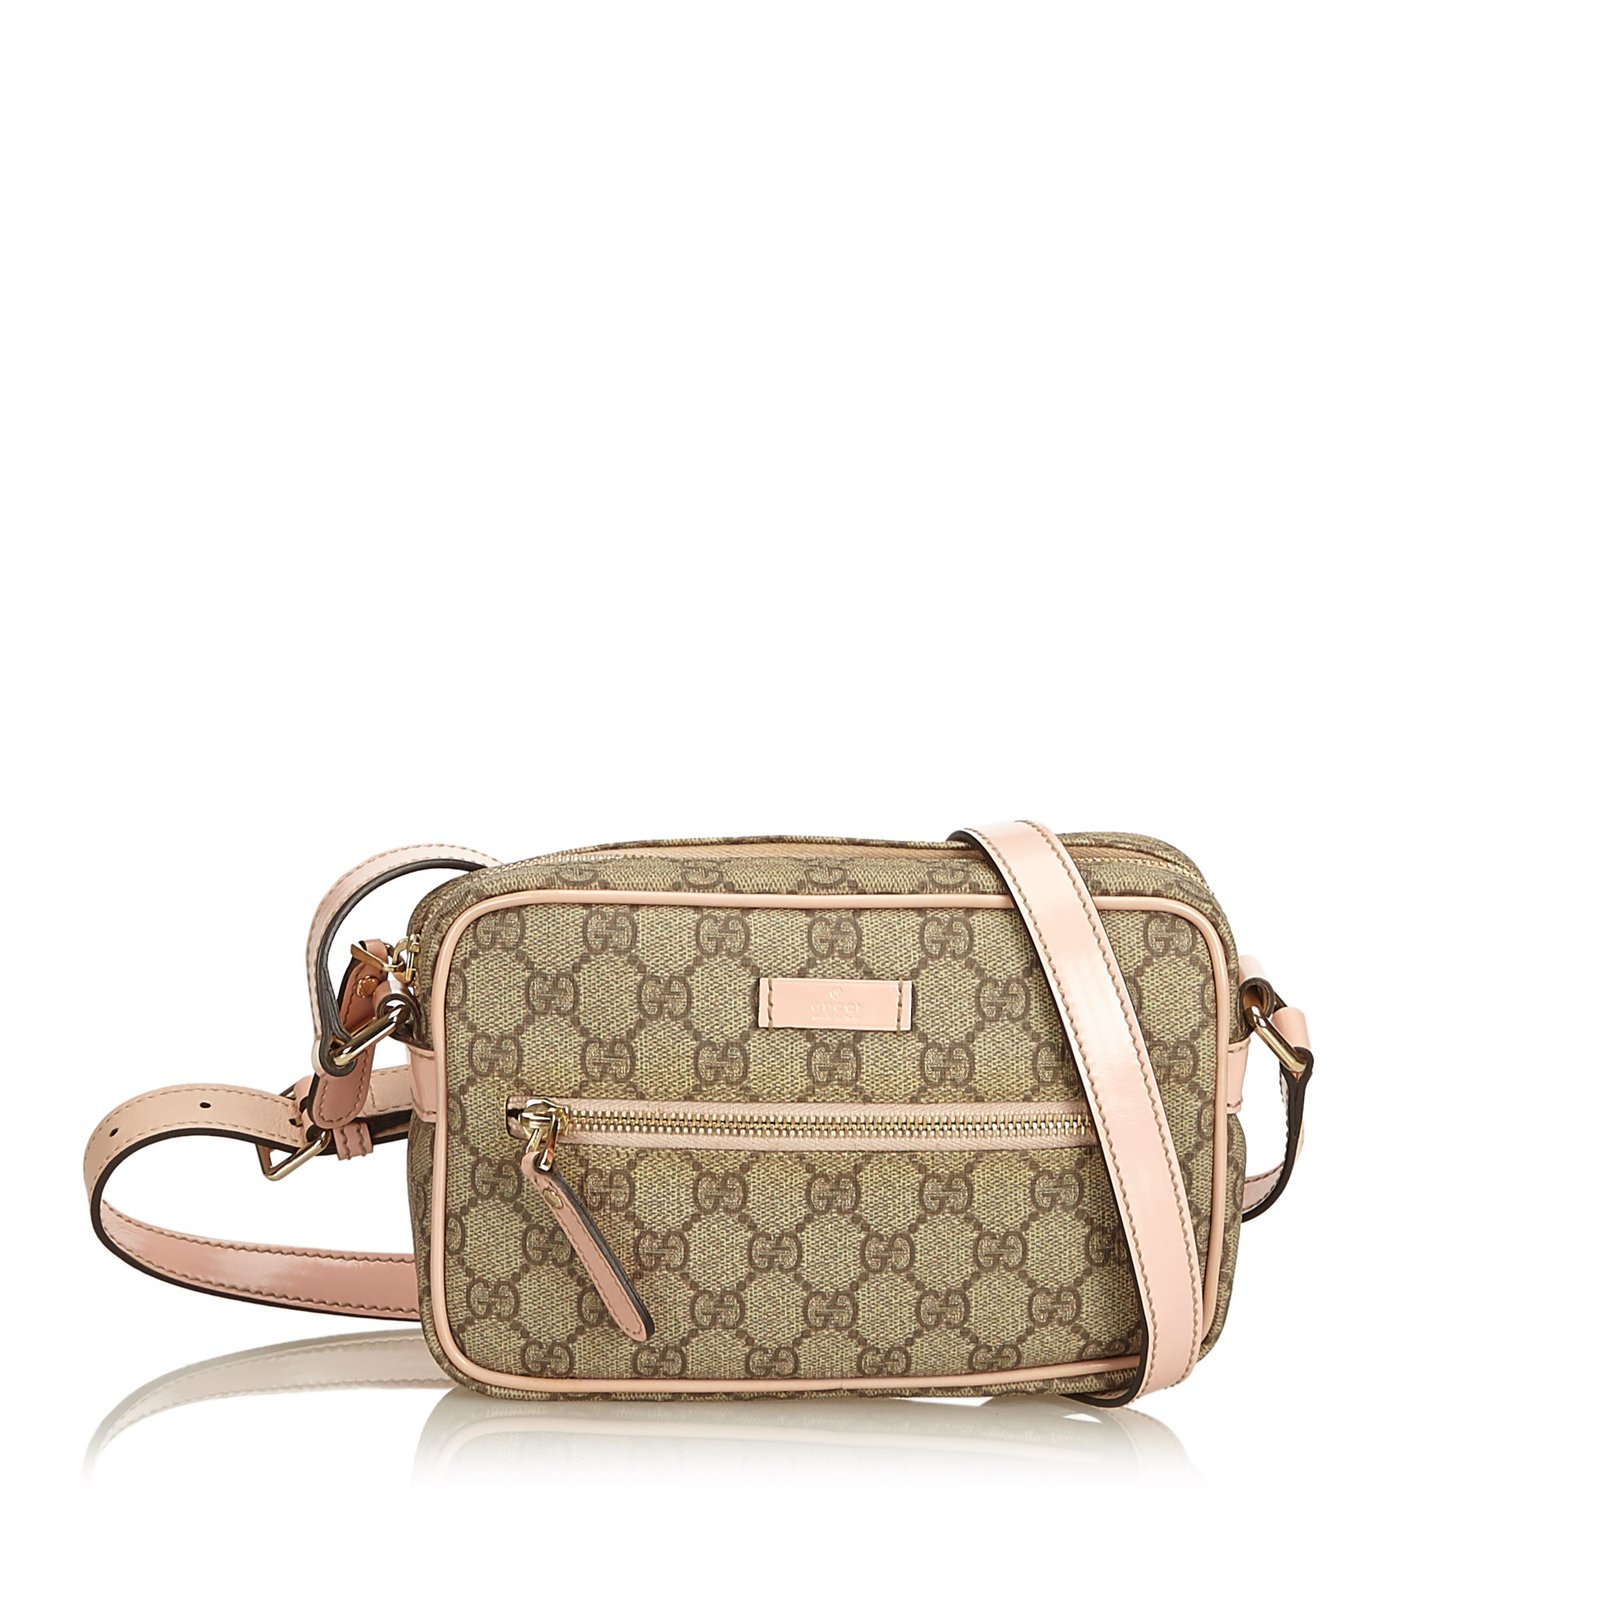 d63fe22a305cd9 Gucci Guccissima Canvas Crossbody bag Handbags Leather,Other,Plastic  Brown,Pink,Dark